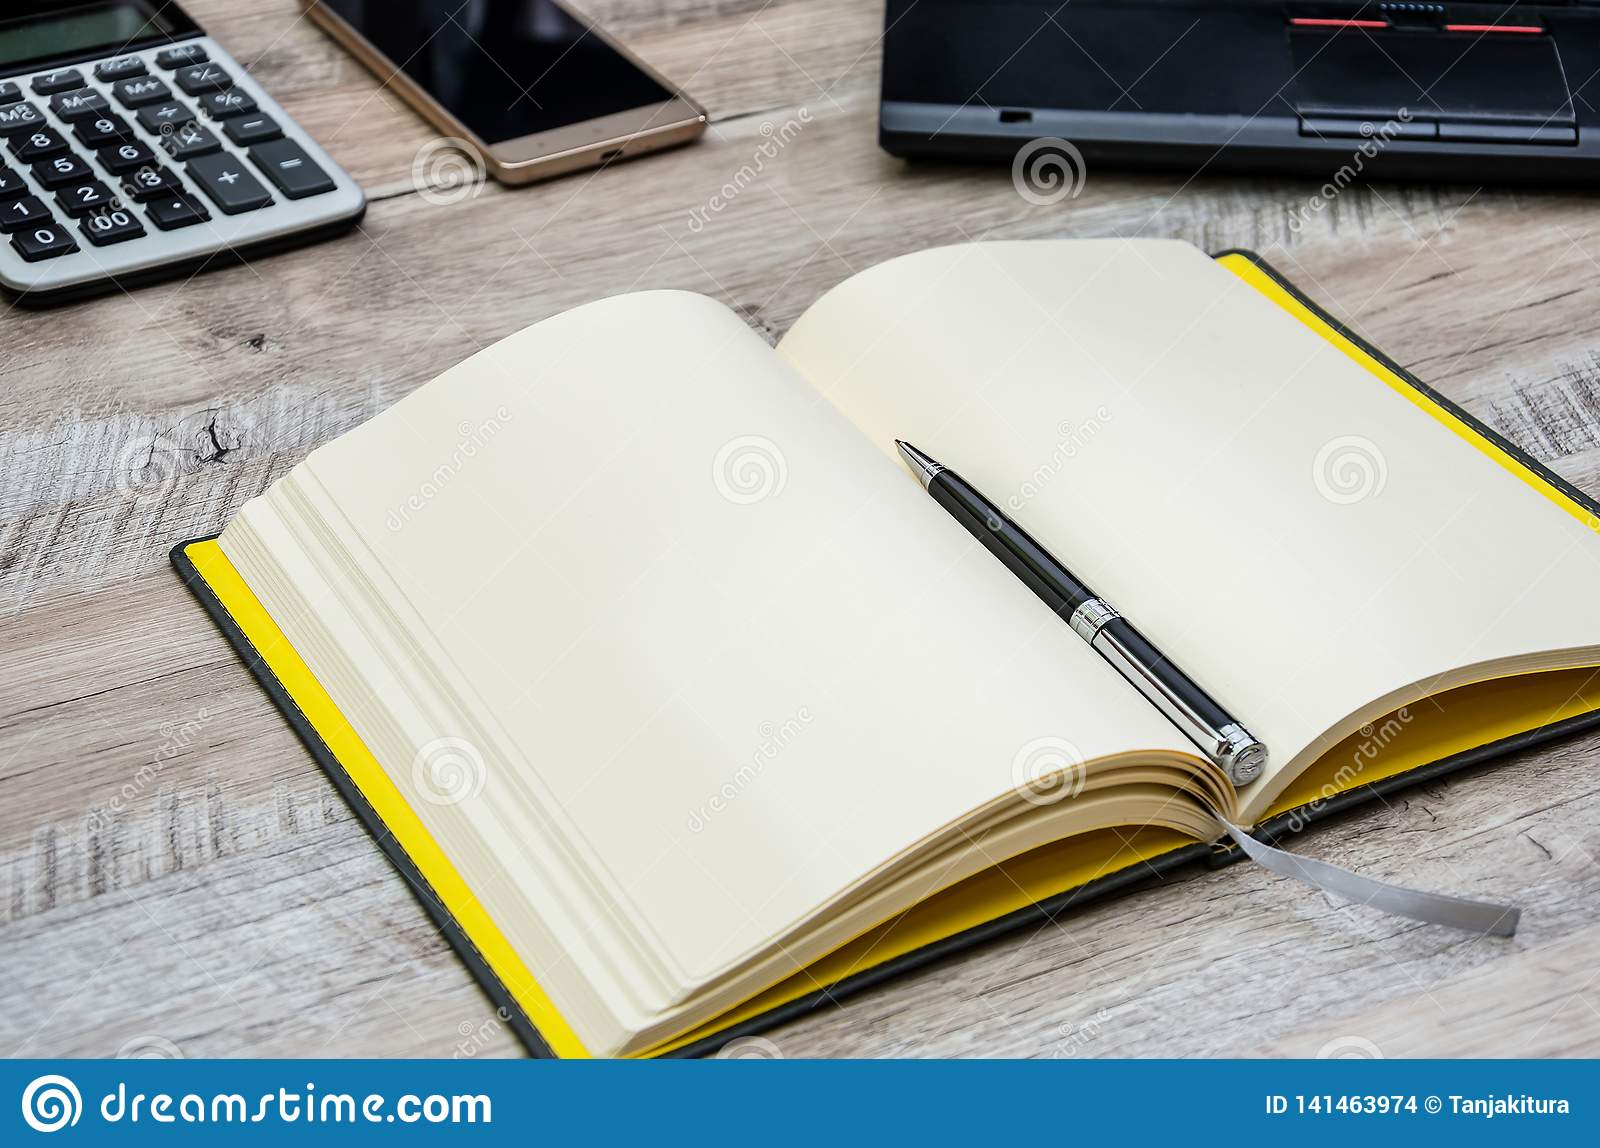 Notepad, pen, smartphone and part of the laptop on a wooden background